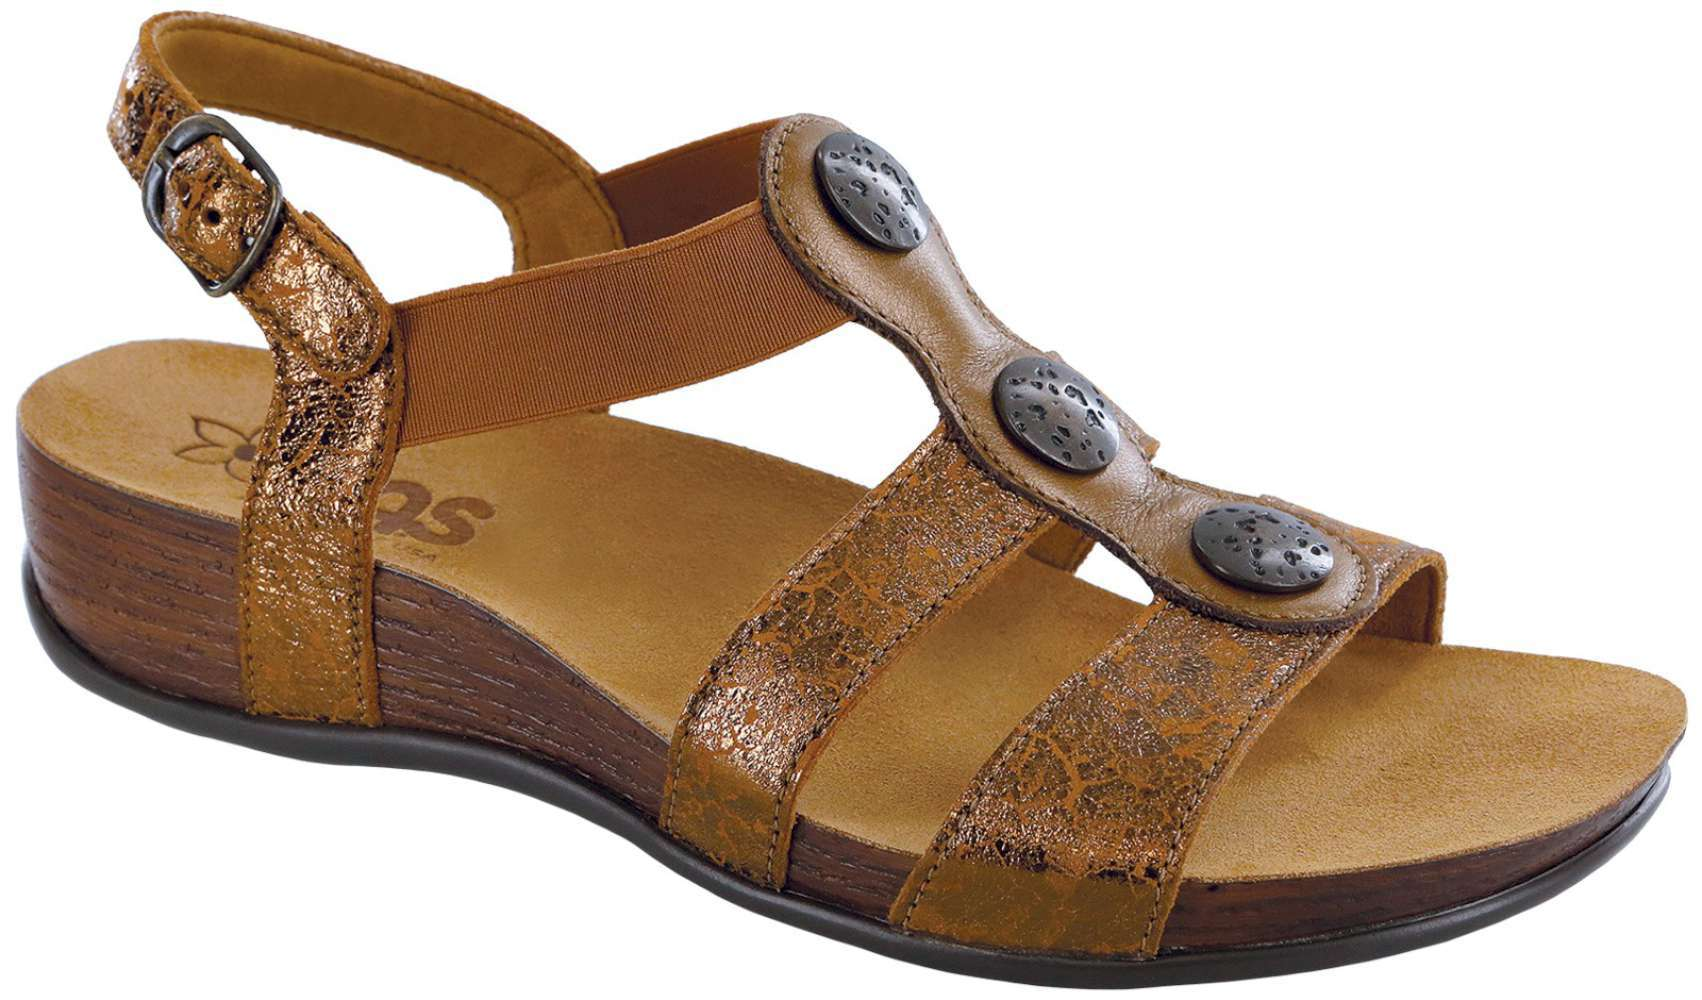 Sas Womens Toe Clover Open Toe Womens Casual Strappy Sandals df077d